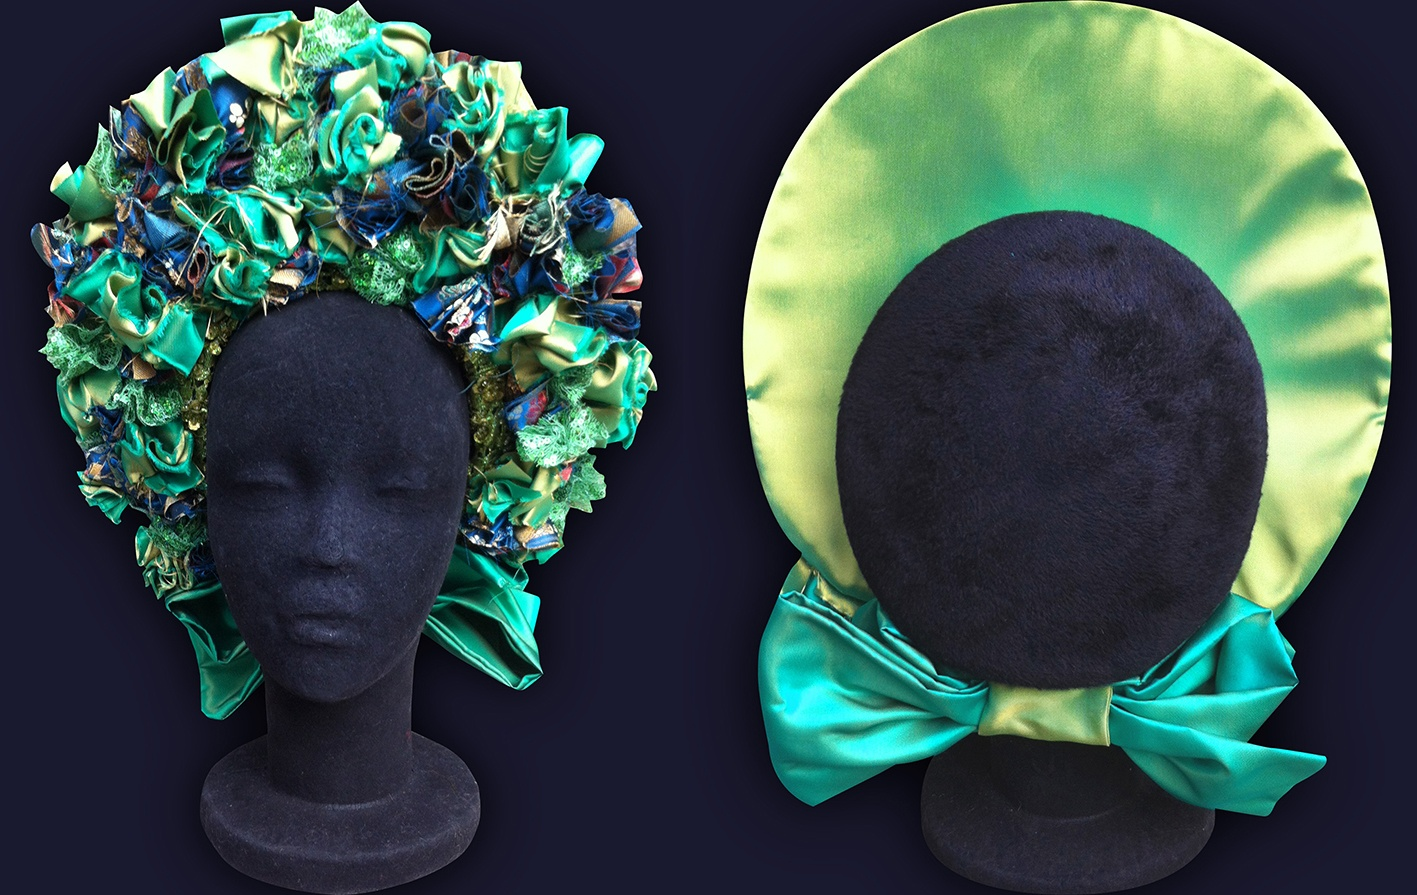 Ethnic hat made out of taffeta fabric